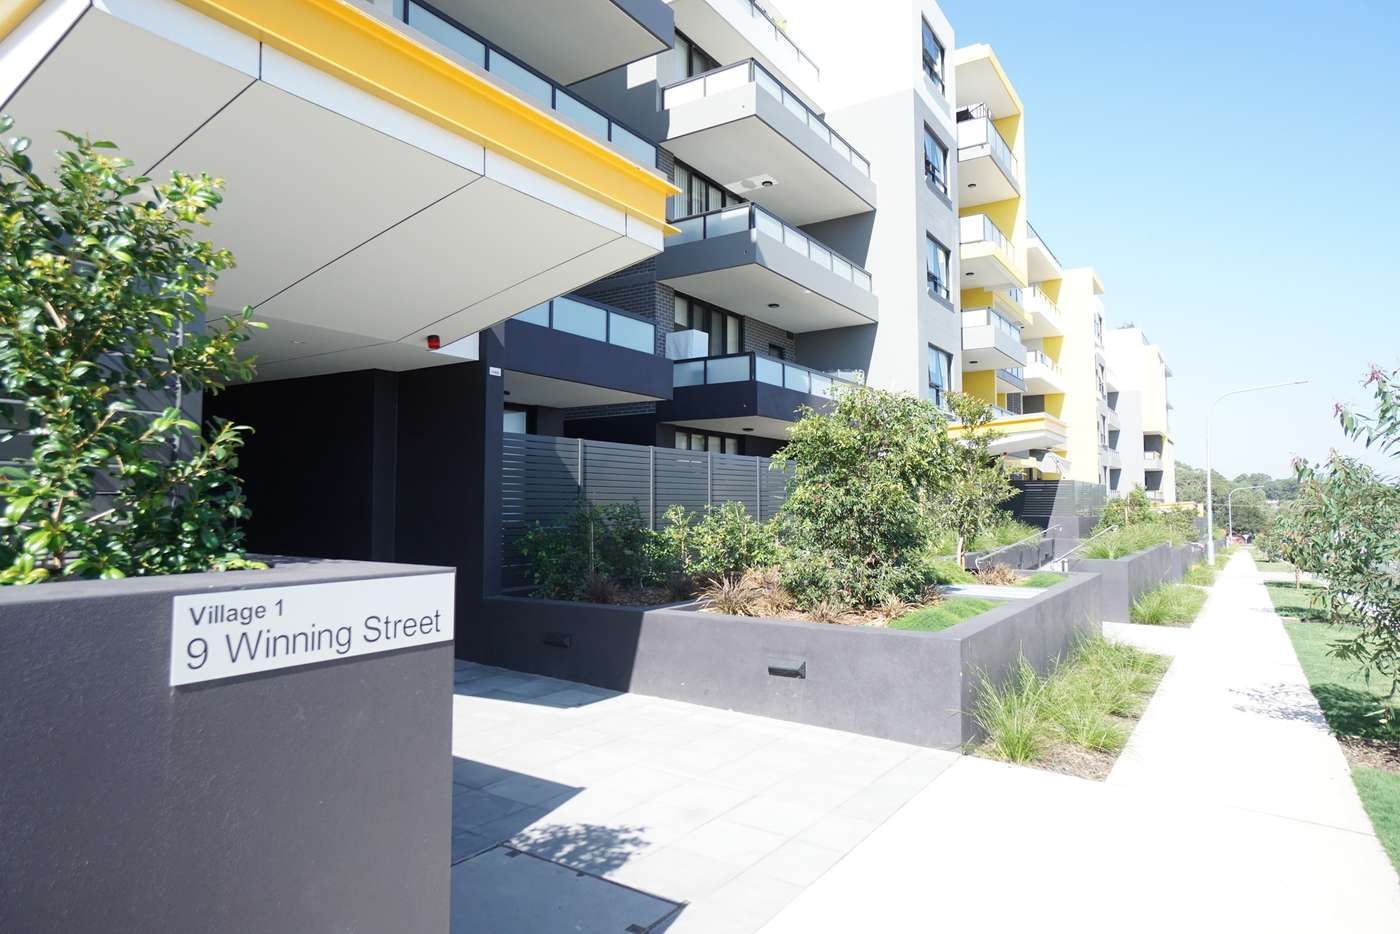 Main view of Homely apartment listing, Level 4/434/9 Winning Street, Kellyville NSW 2155